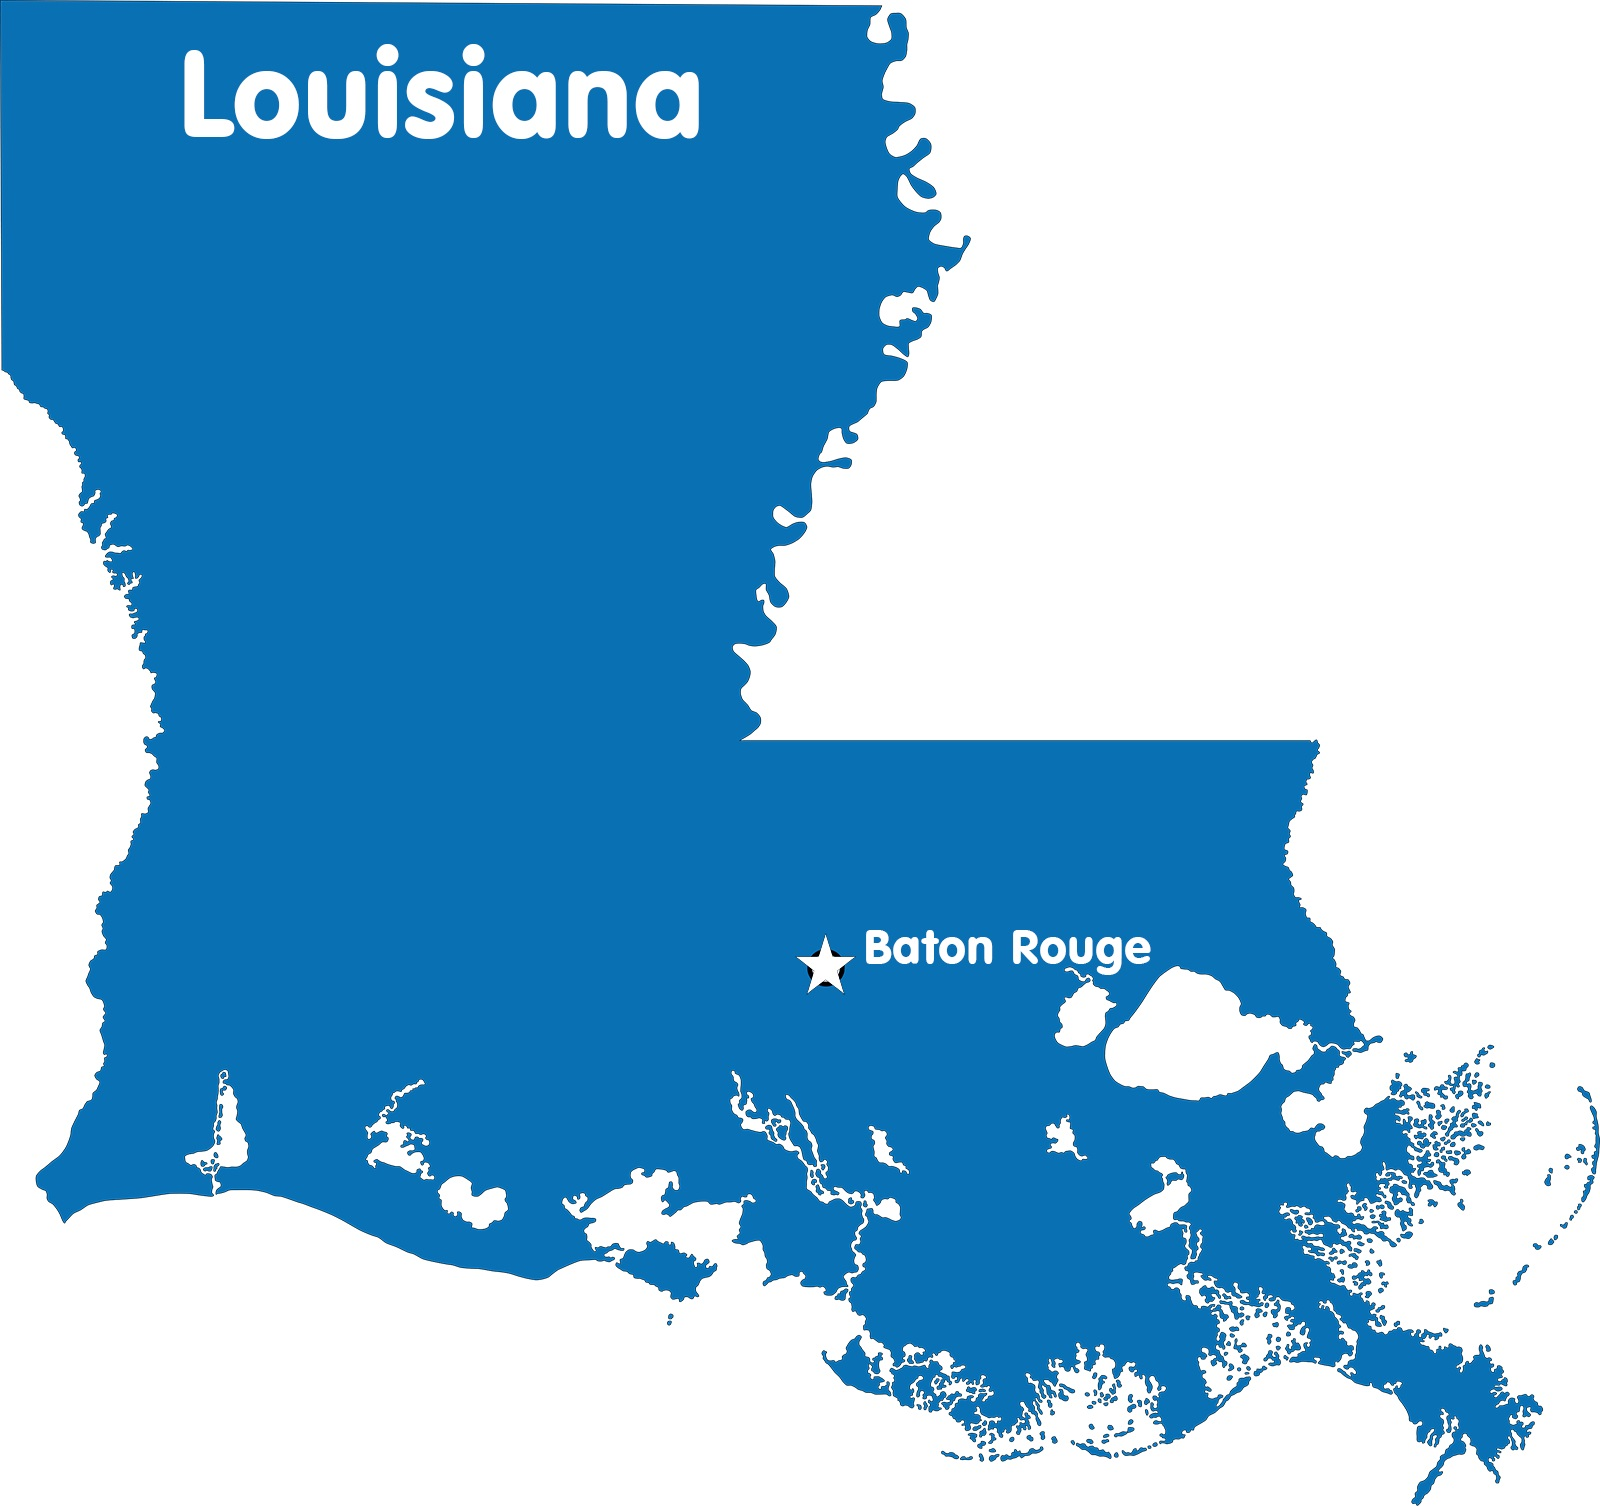 Louisiana Capital Map | Large Printable High Resolution and Standard Map